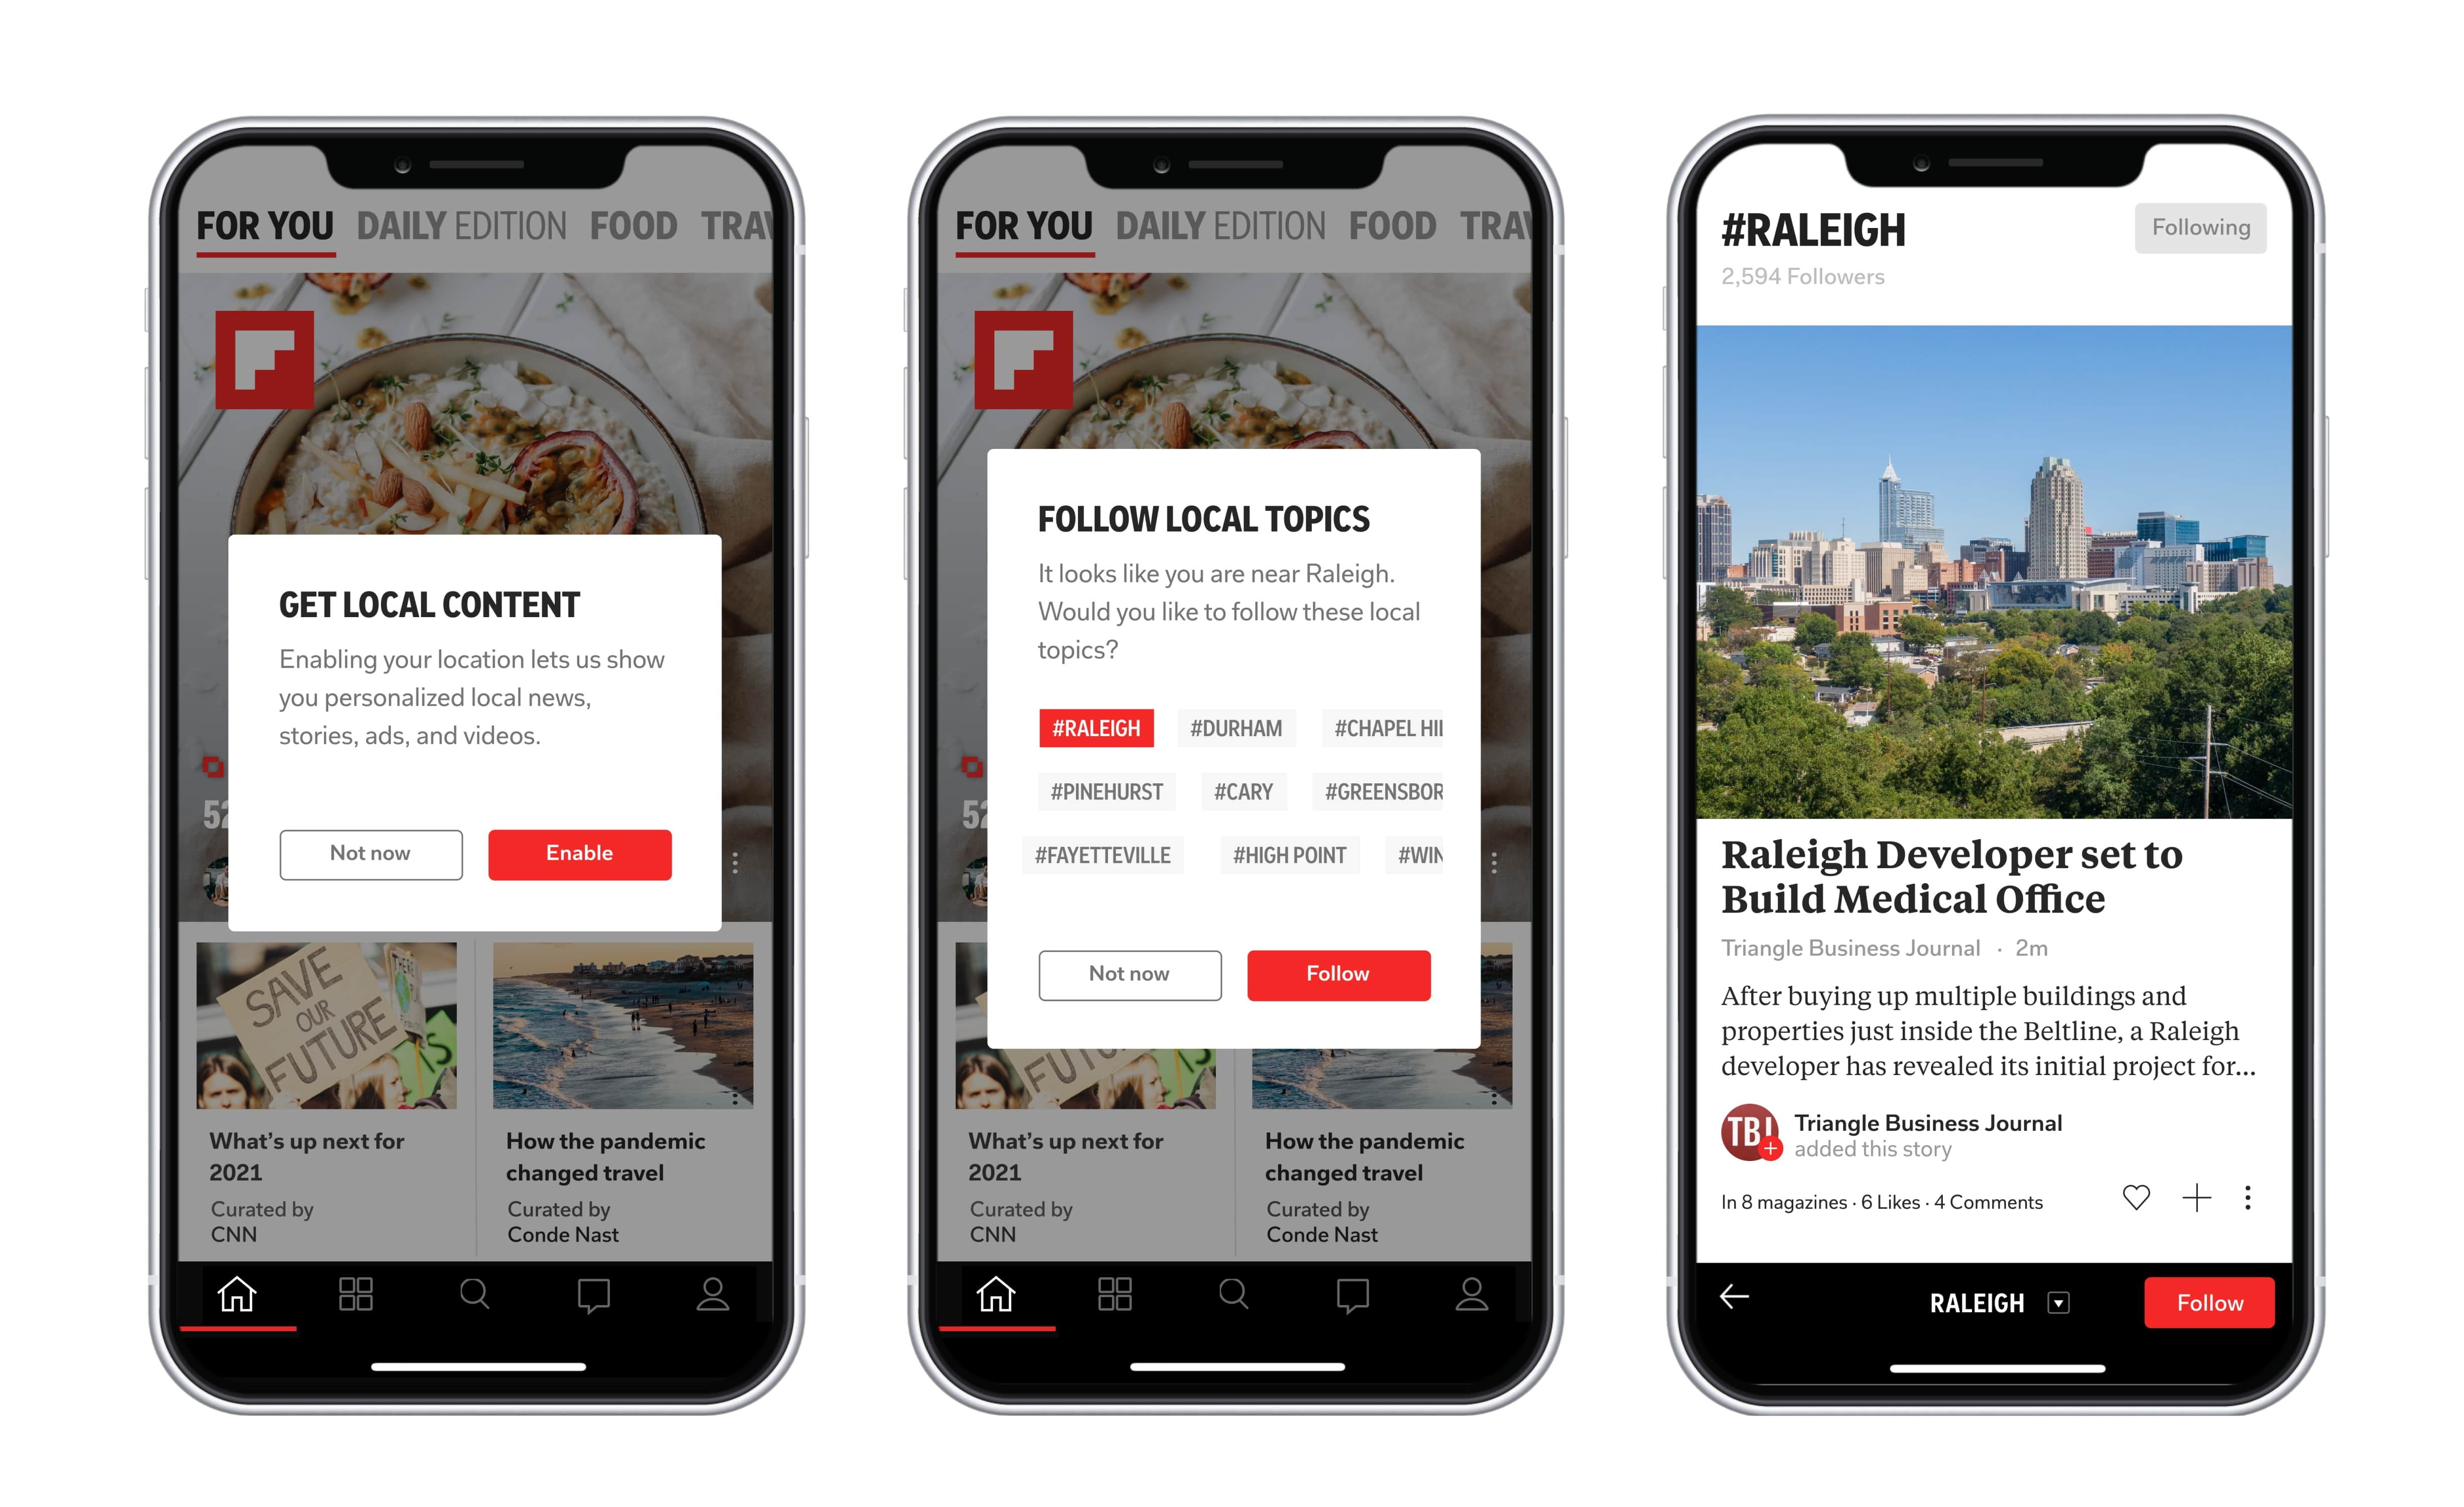 Flipboard just announced a huge expansion: Local news now offered for more than 1,000 cities